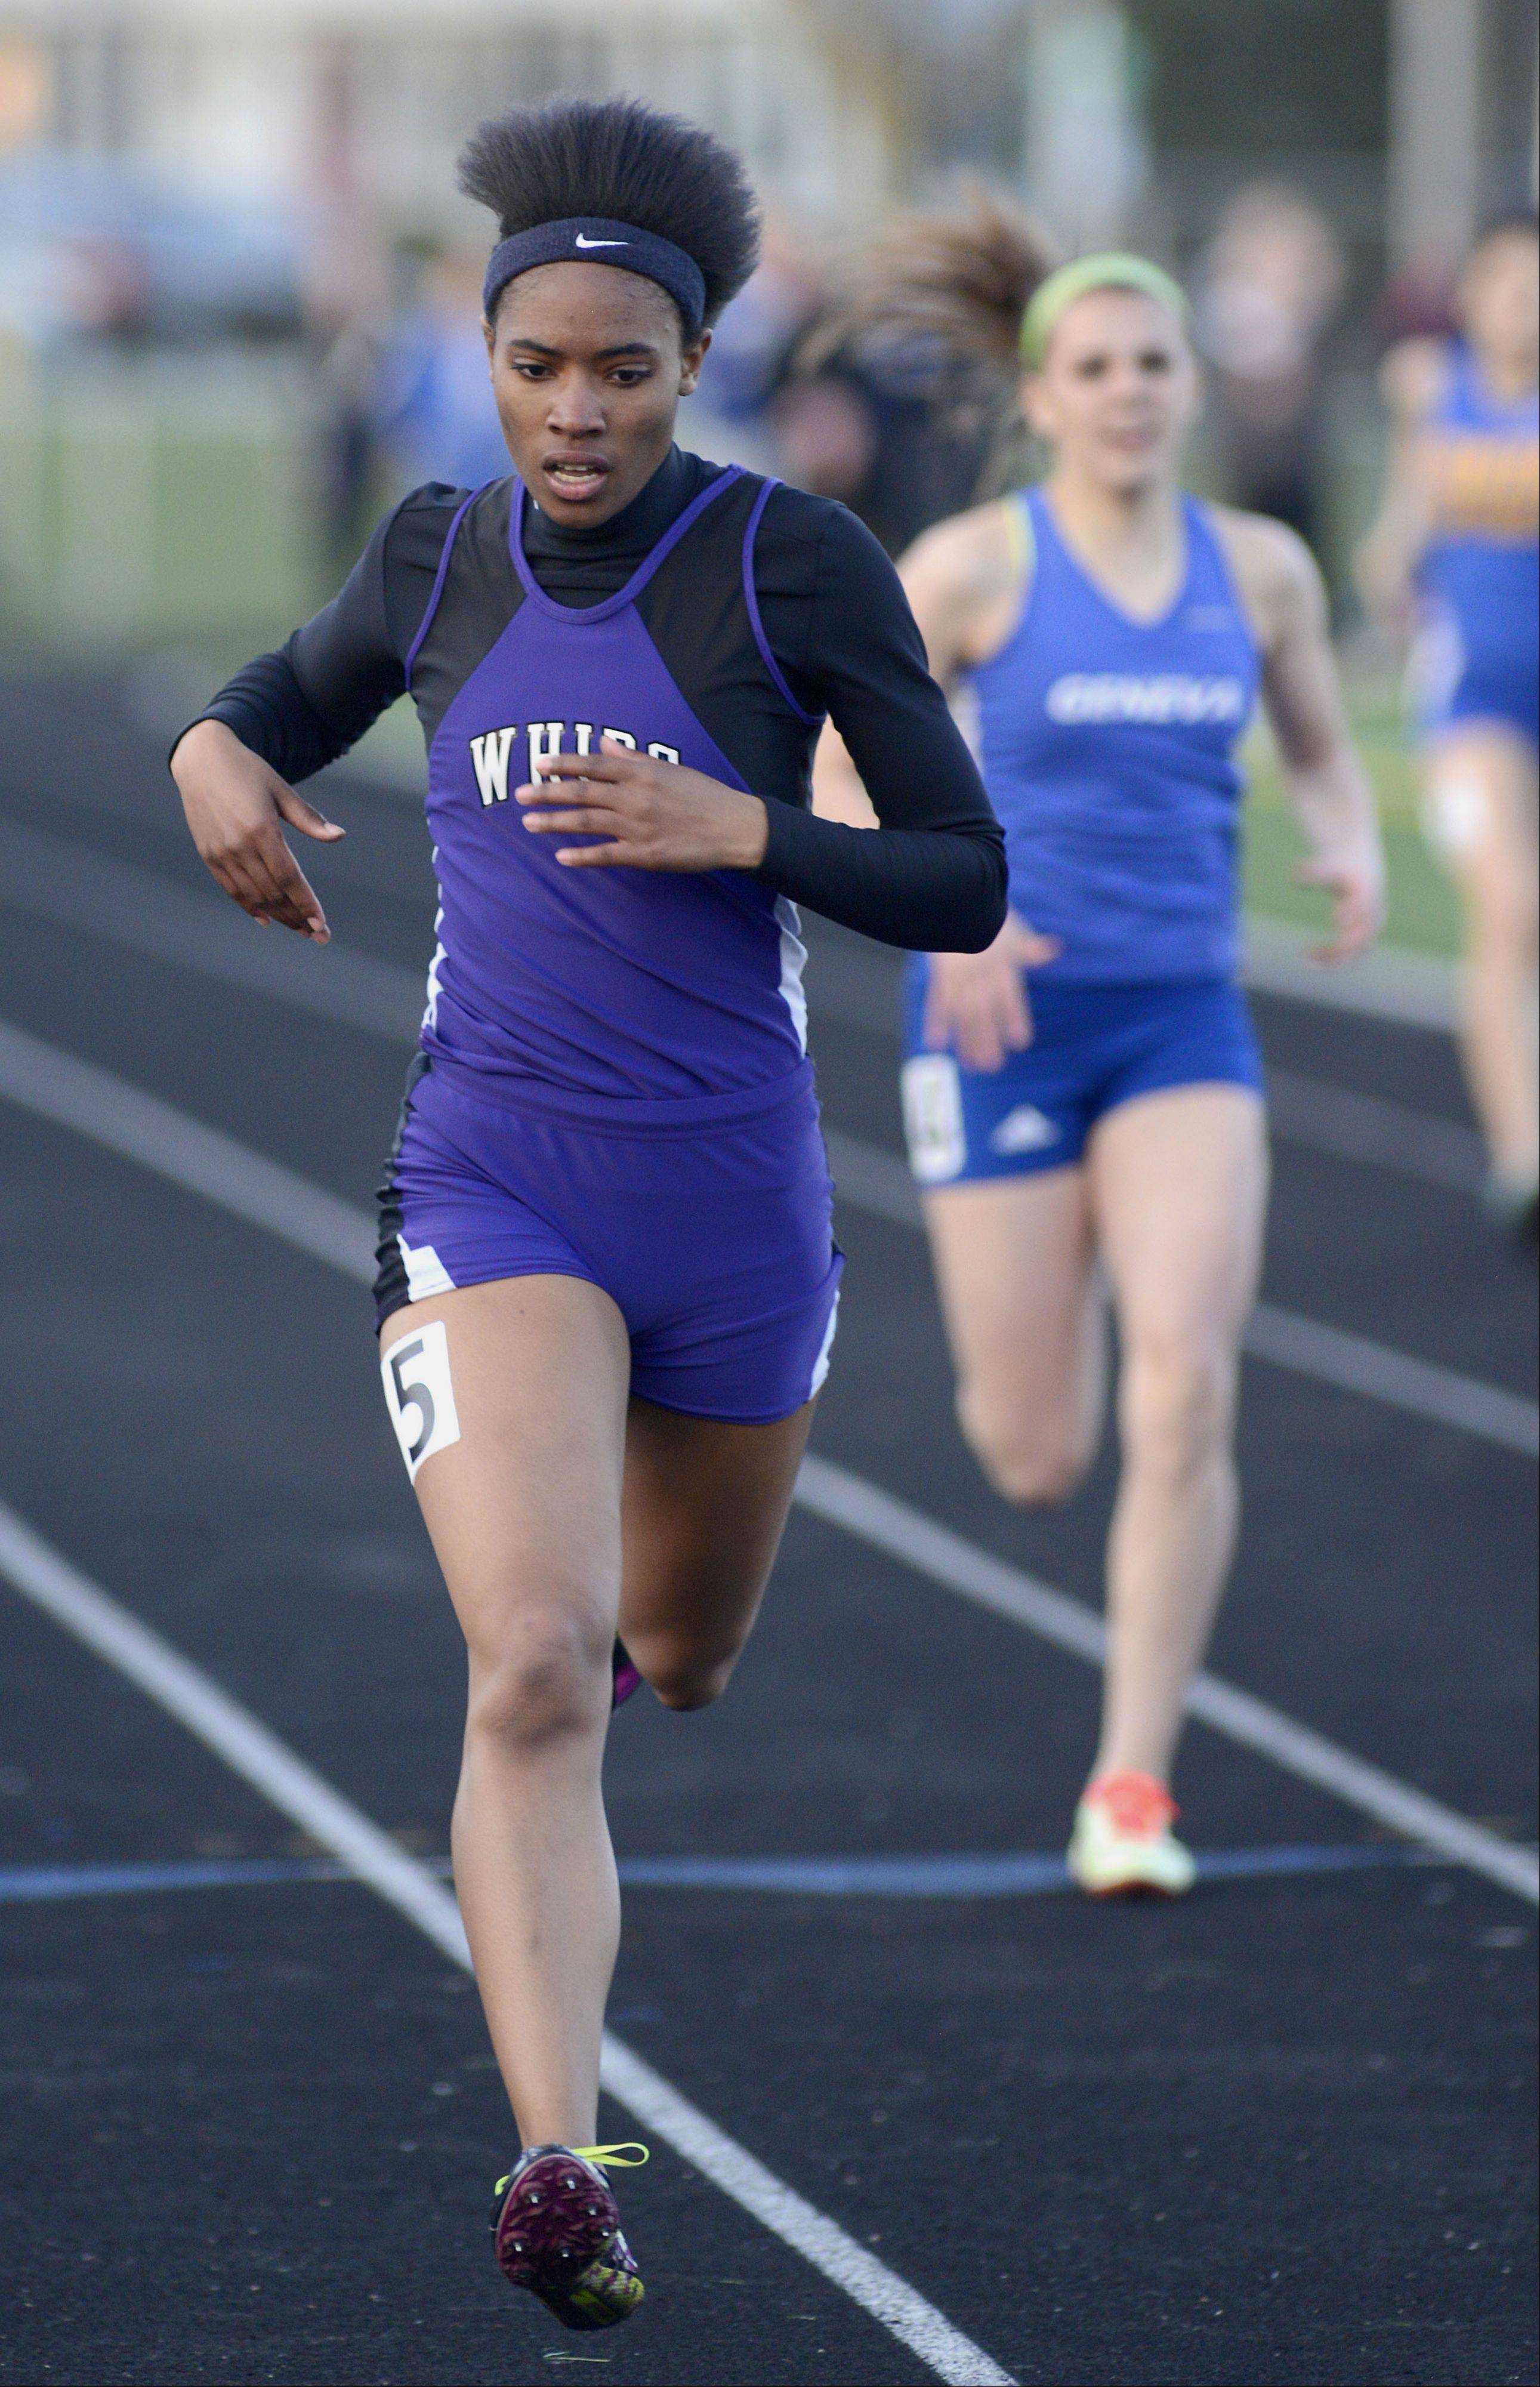 Hampshire's Ashley Fouch wins the final heat of the 400 meter dash finals at the Kane County Invitational track in Geneva meet on Friday, April 26.